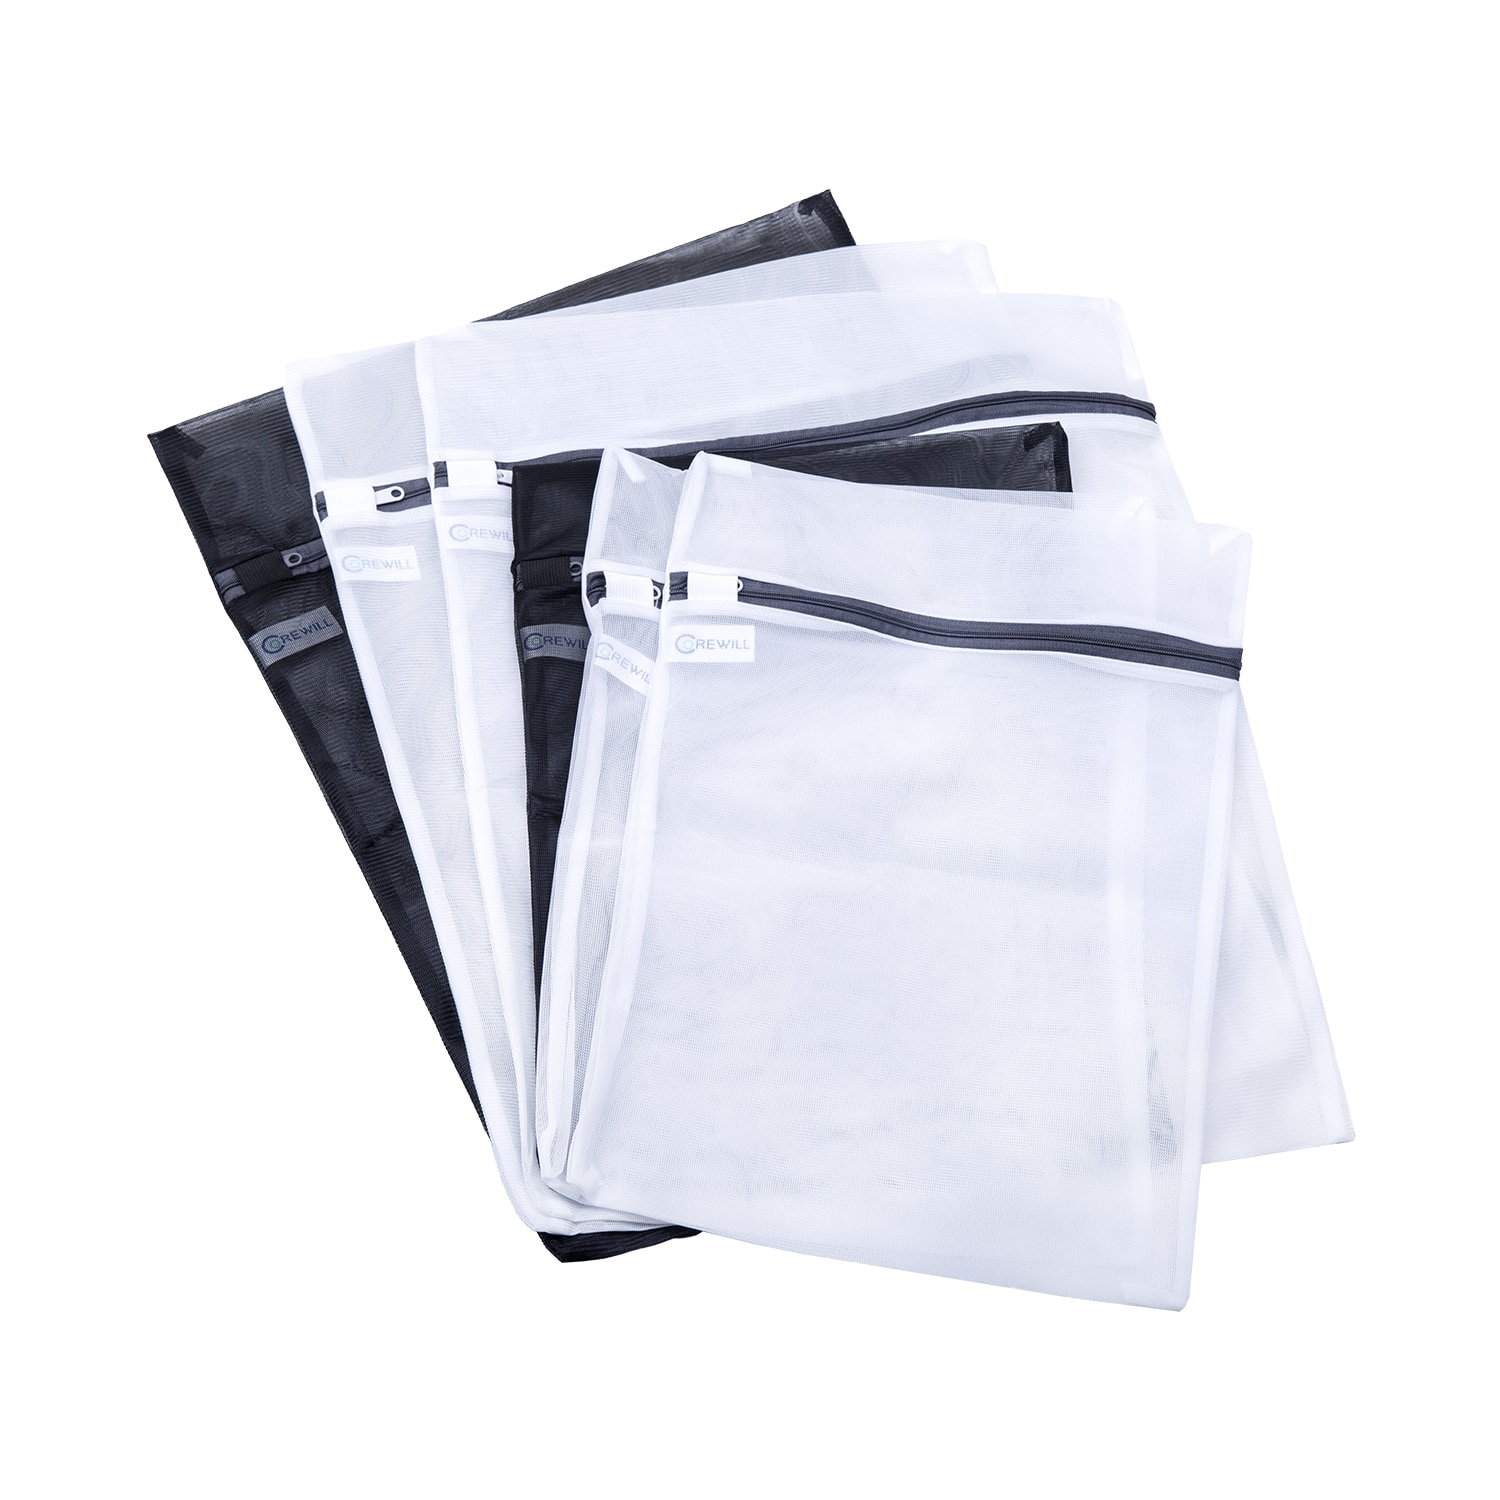 6 Packs Mesh Laundry Bags Travel Wash Bag for Blouse, Hosiery, Stocking, Underwear, Bra and Lingerie -3 Large,3 Medium $4.99